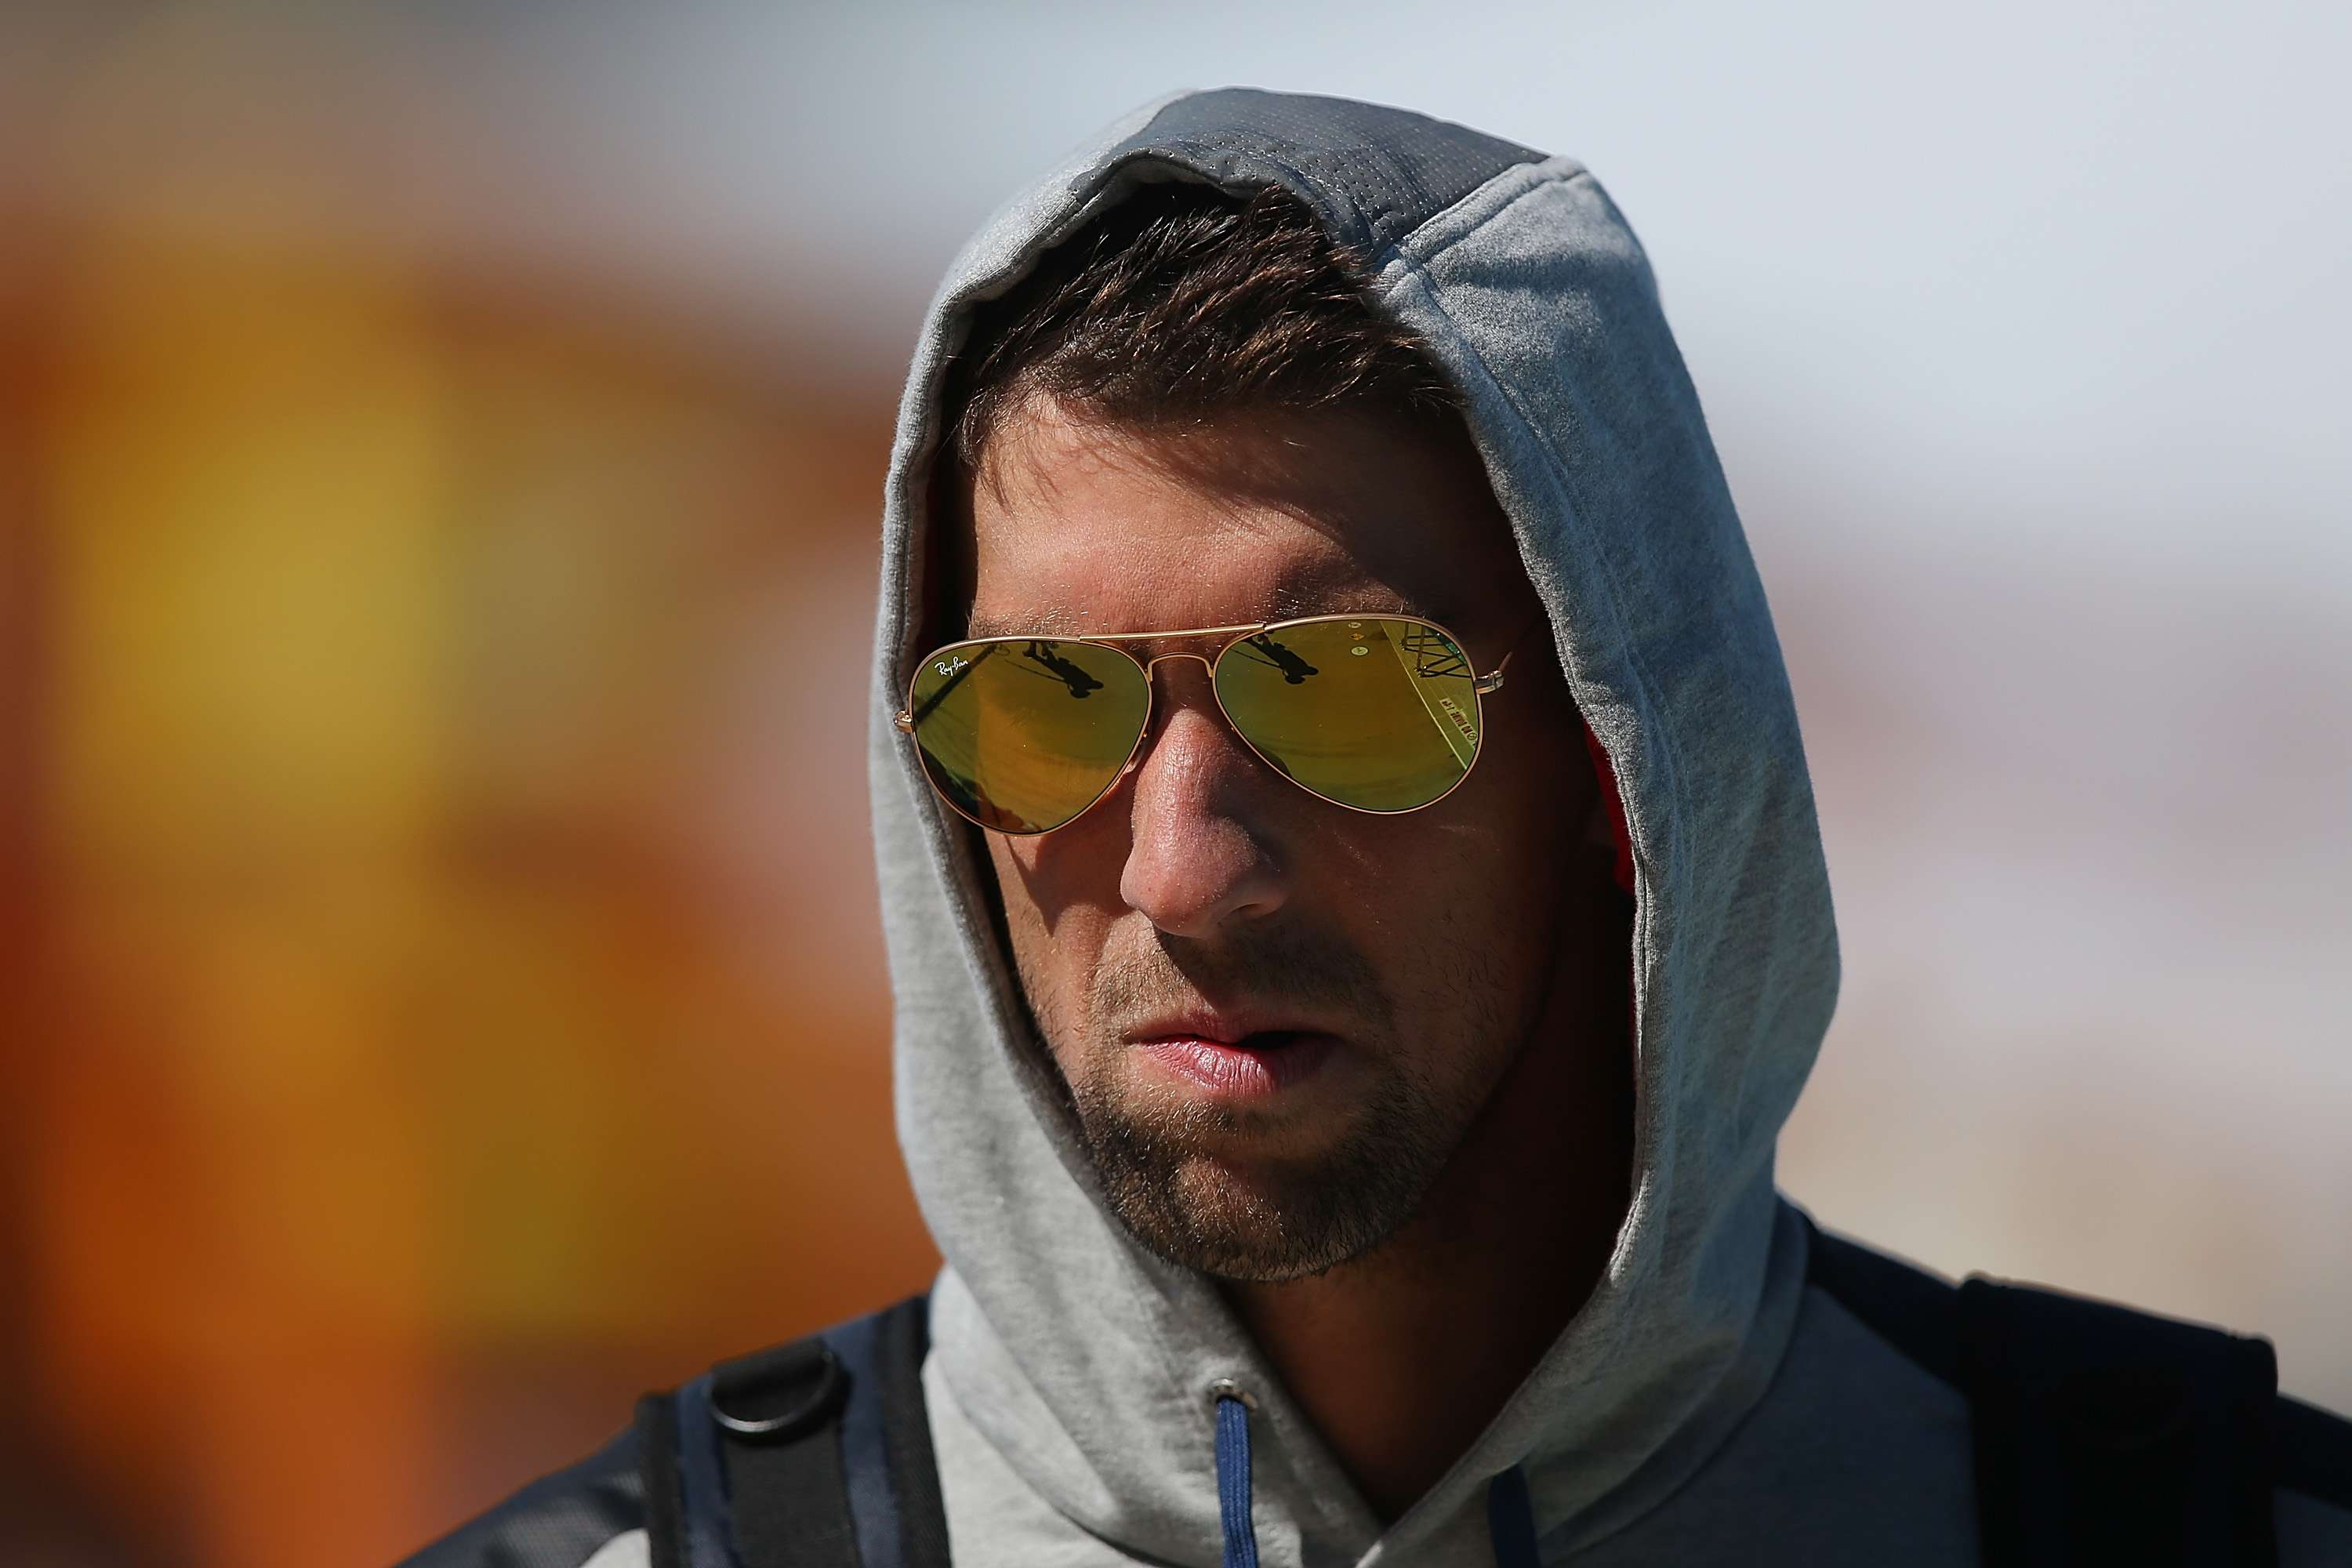 Phelps es arrestado por segunda ocasión. Foto: Getty Images